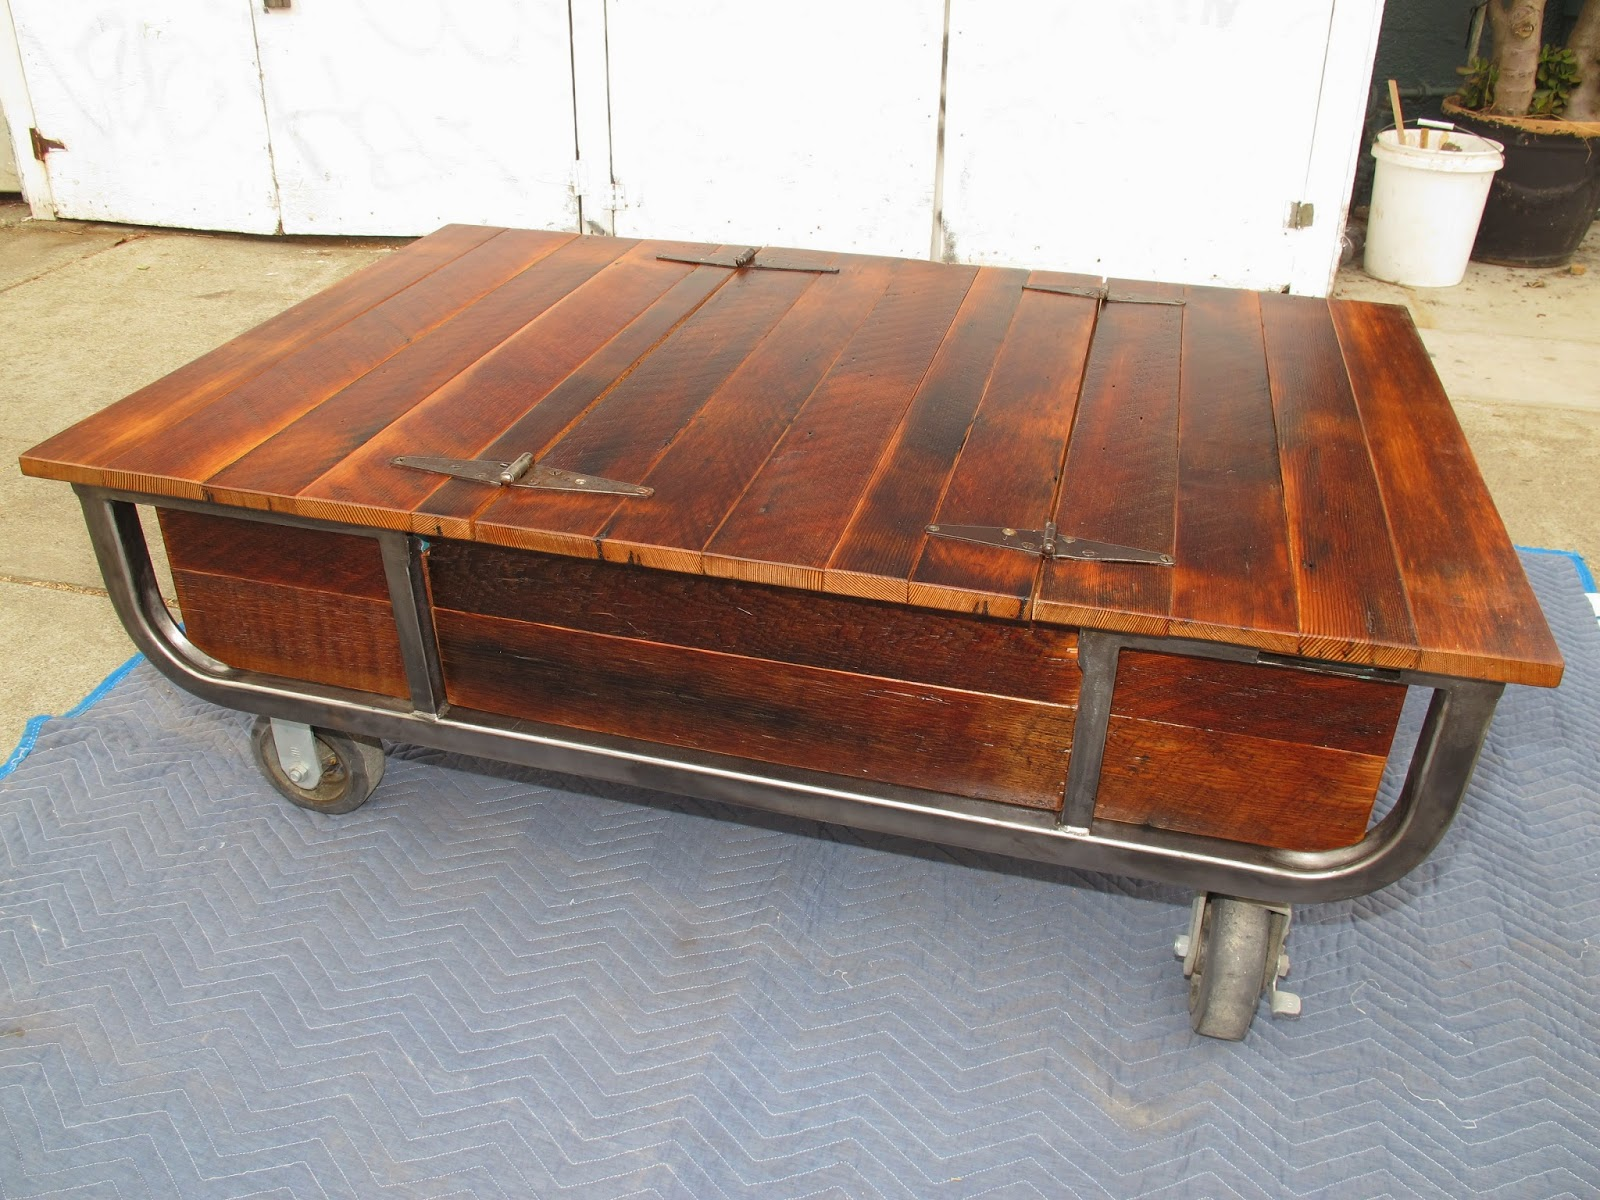 This Coffee Table Made From Rough Sawn Doug Fir, Two Lids Open To Storage  Inside